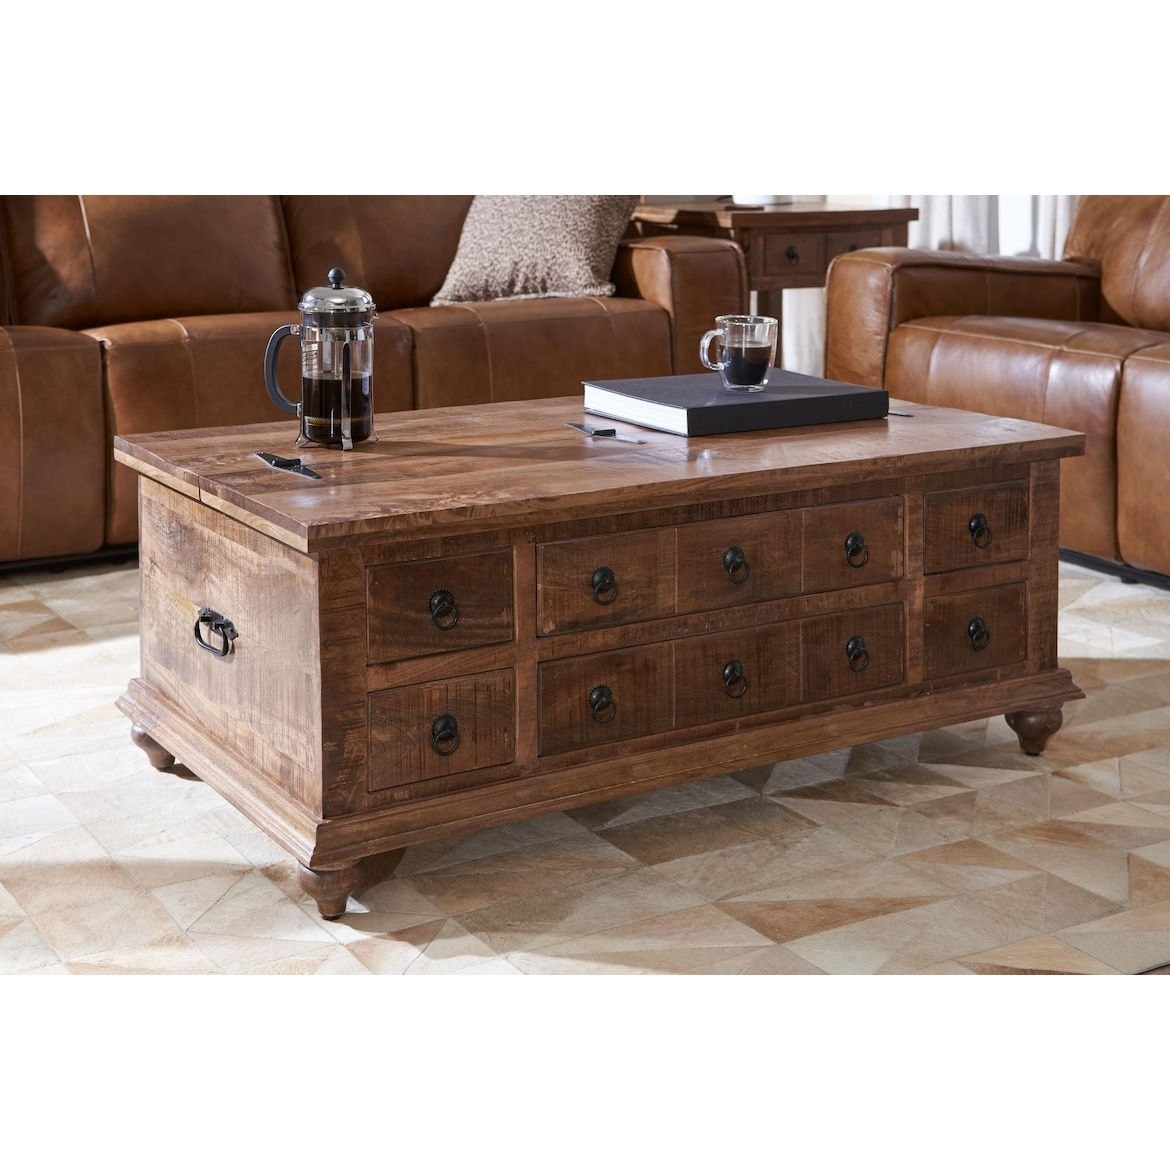 Ellis Trunk Coffee Table Value City Furniture And Mattresses Coffee Table Coffee Table Trunk Chest Coffee Table [ 1170 x 1170 Pixel ]